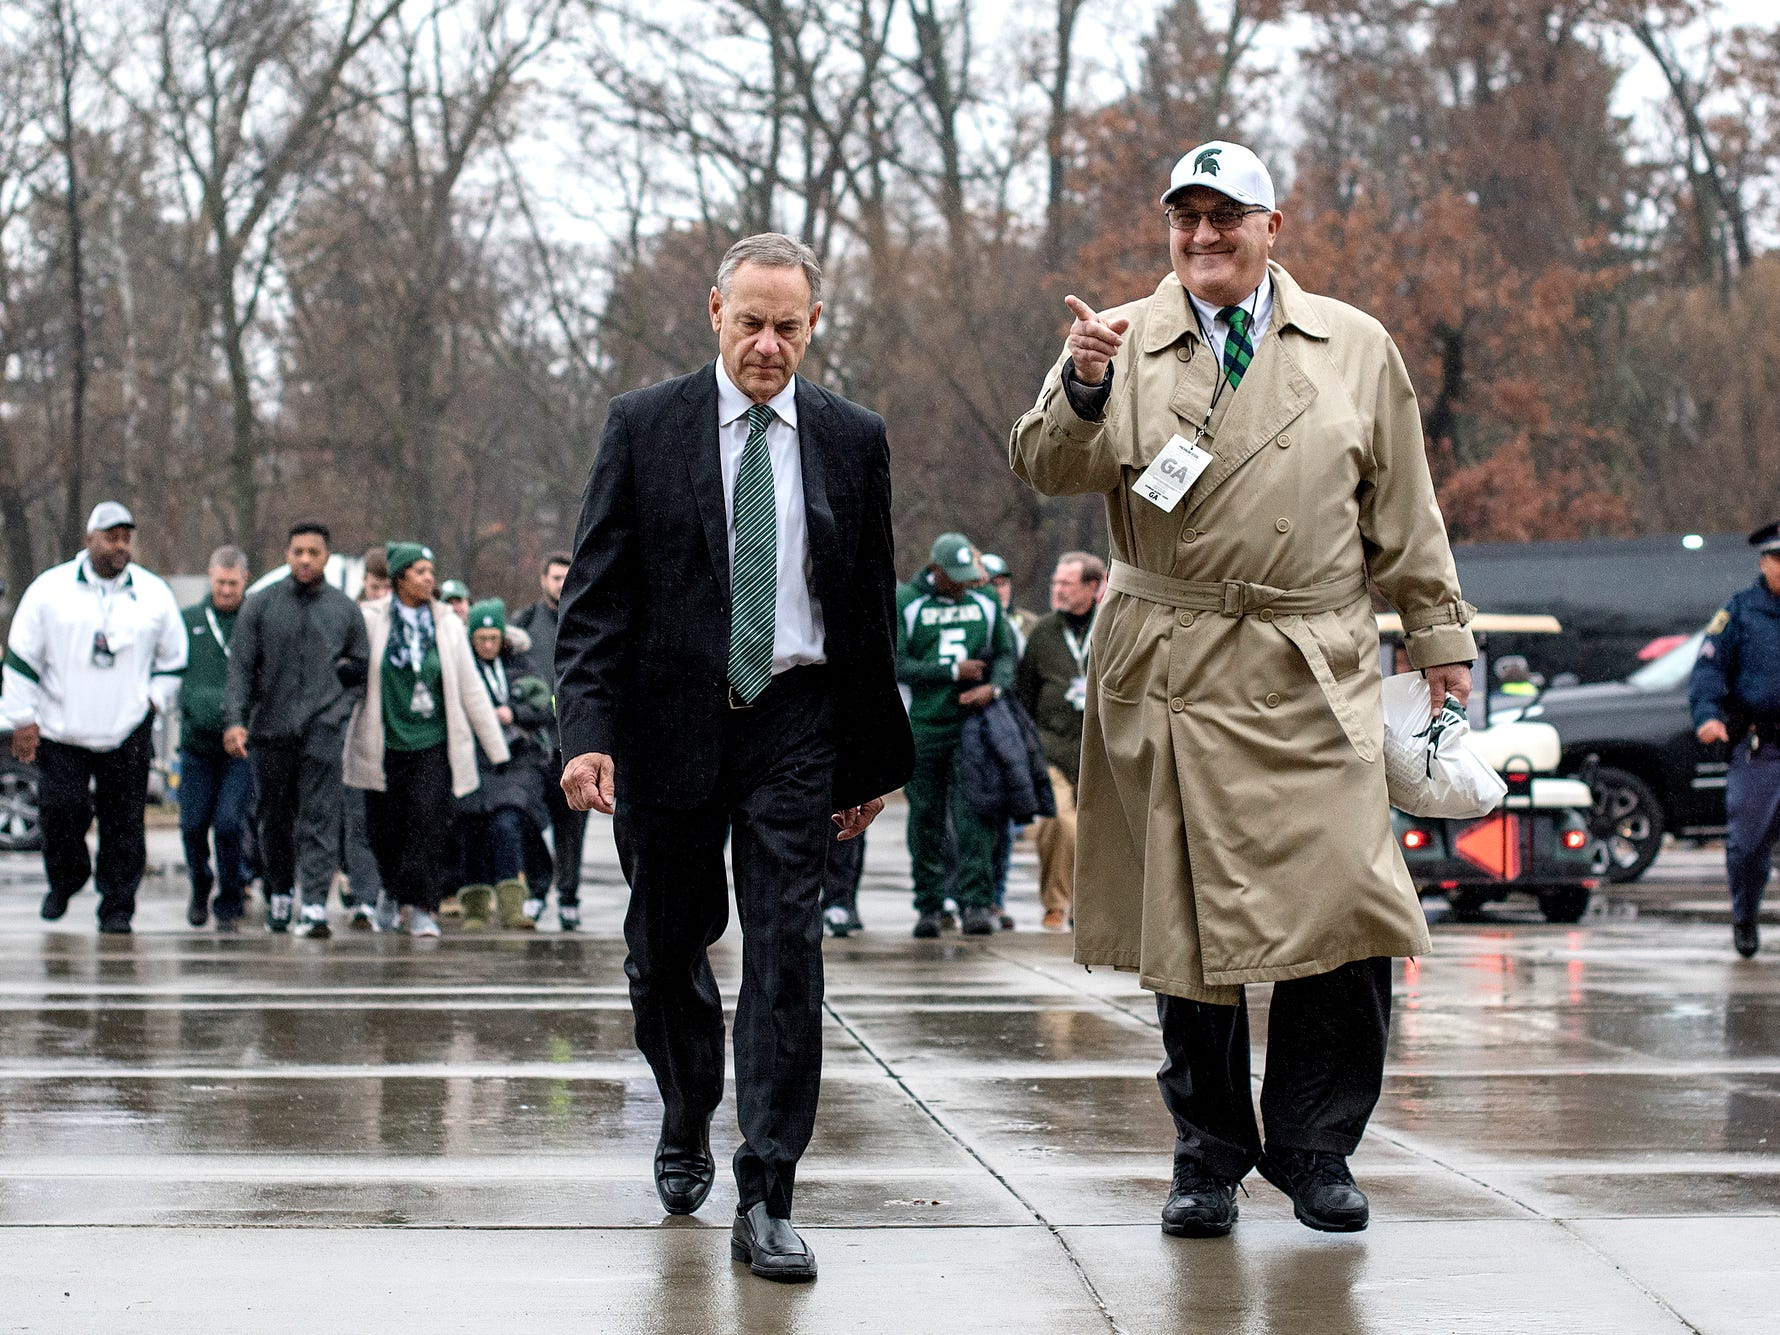 Michigan State's head coach Mark Dantonio, left, and Deputy Athletics Director Greg Ianni walk into Spartan Stadium before the game against Rutgers on Saturday, Nov. 24, 2018, at Spartan Stadium in East Lansing.